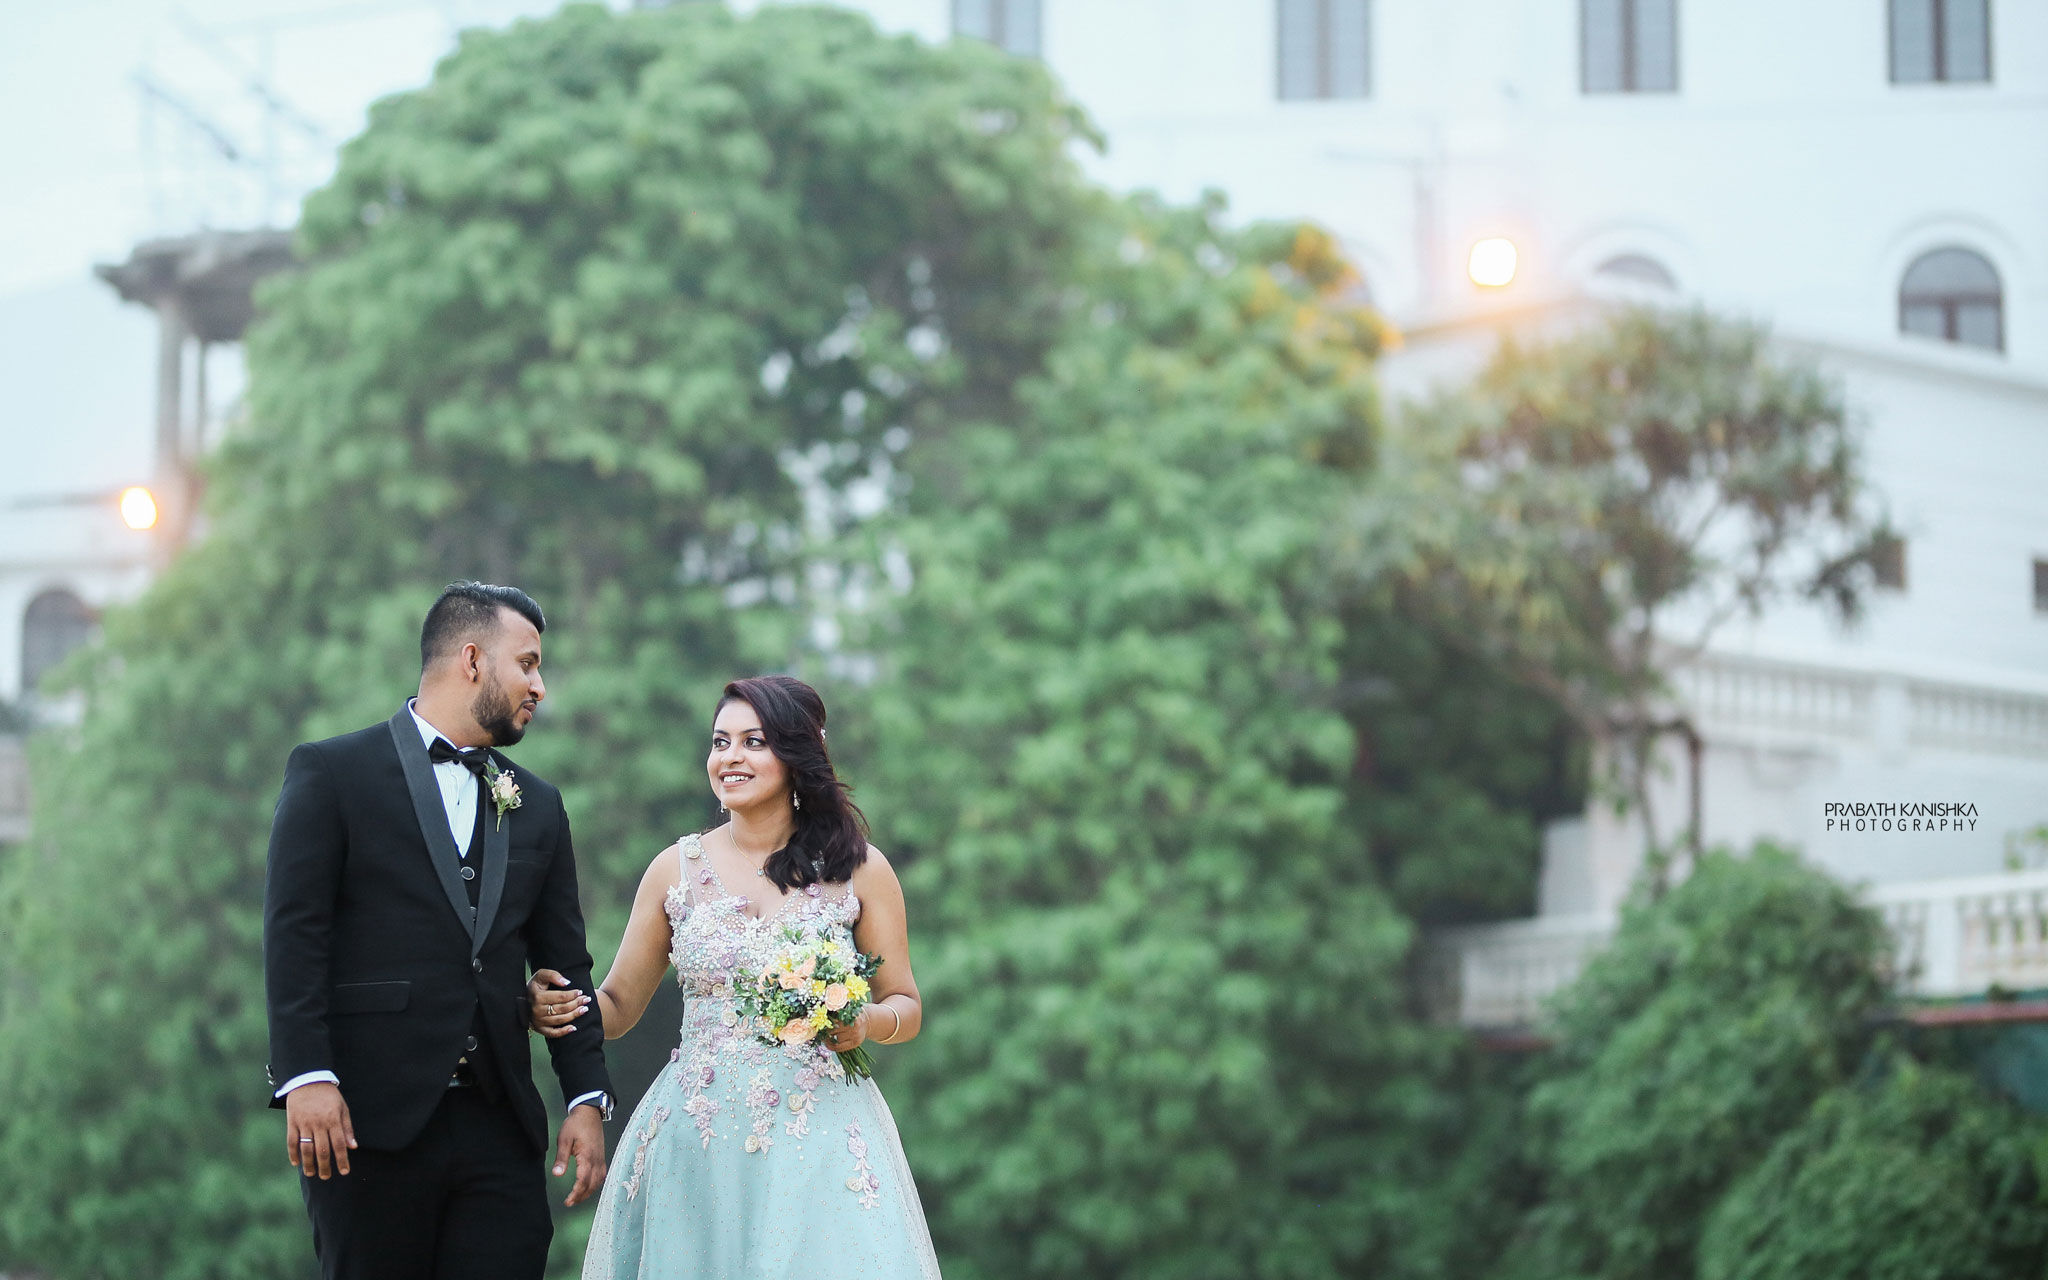 Subanya & Gihan - Prabath Kanishka Wedding Photography